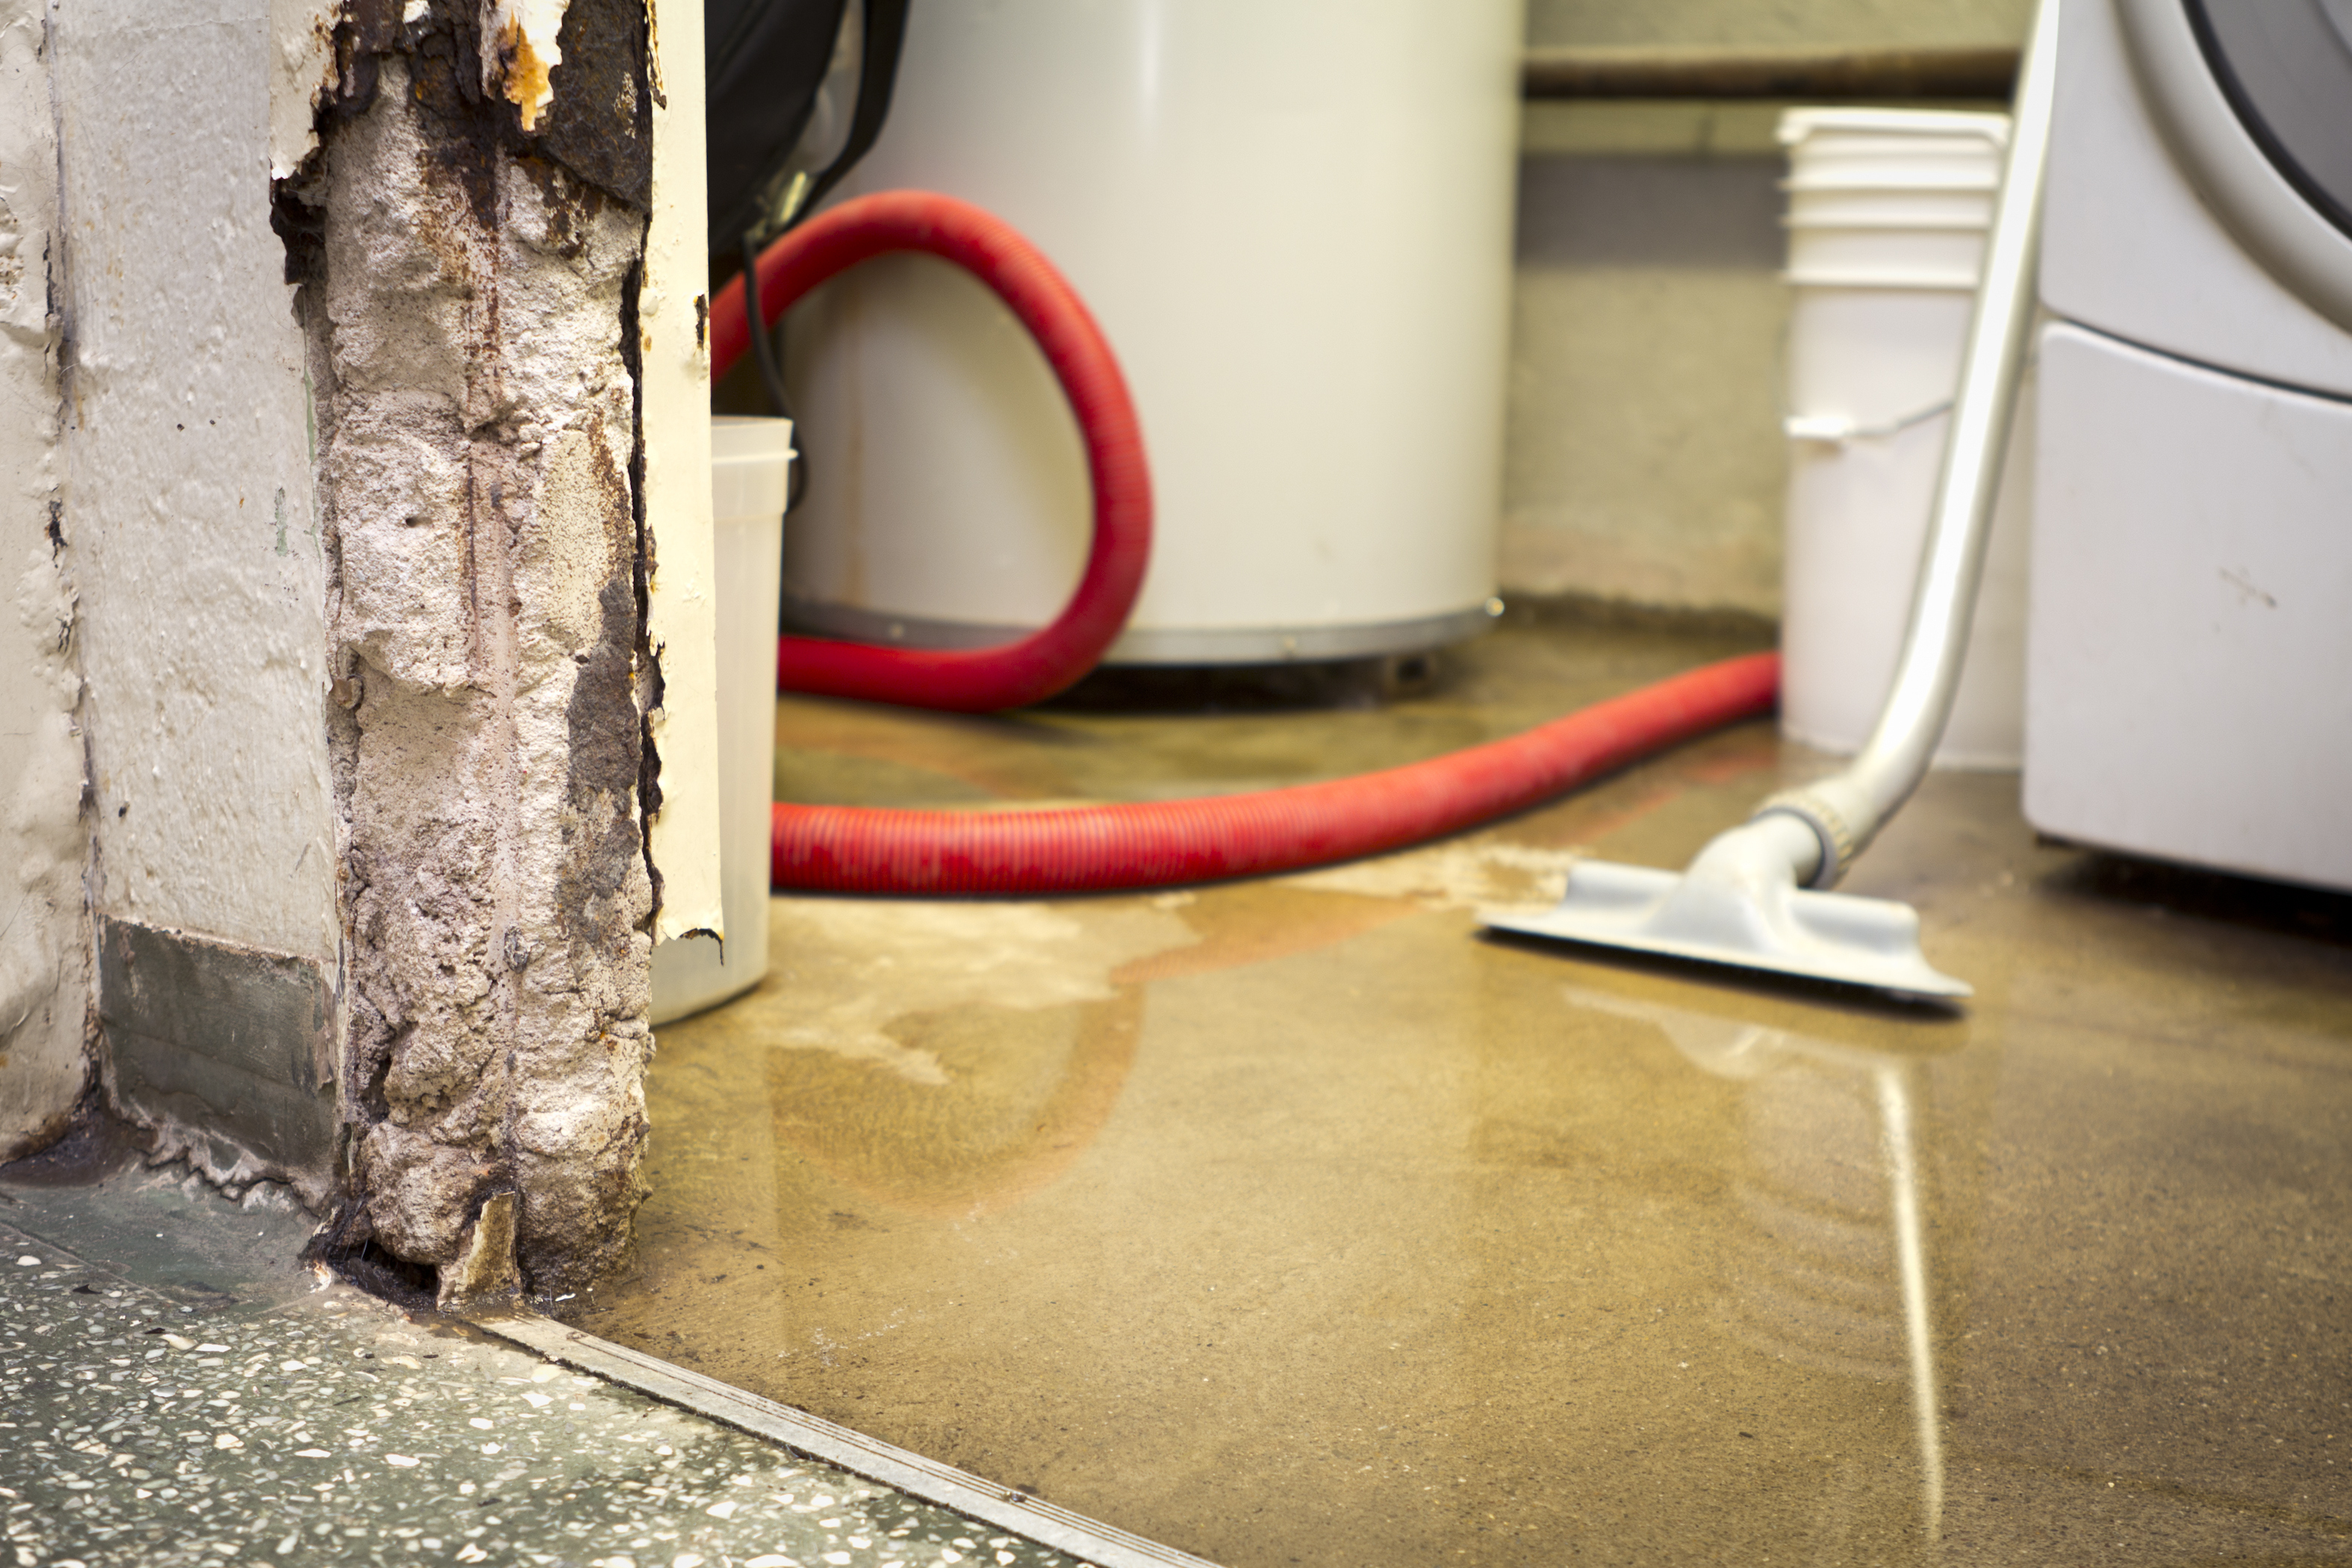 Know the Warning Signs of a Wet Basement